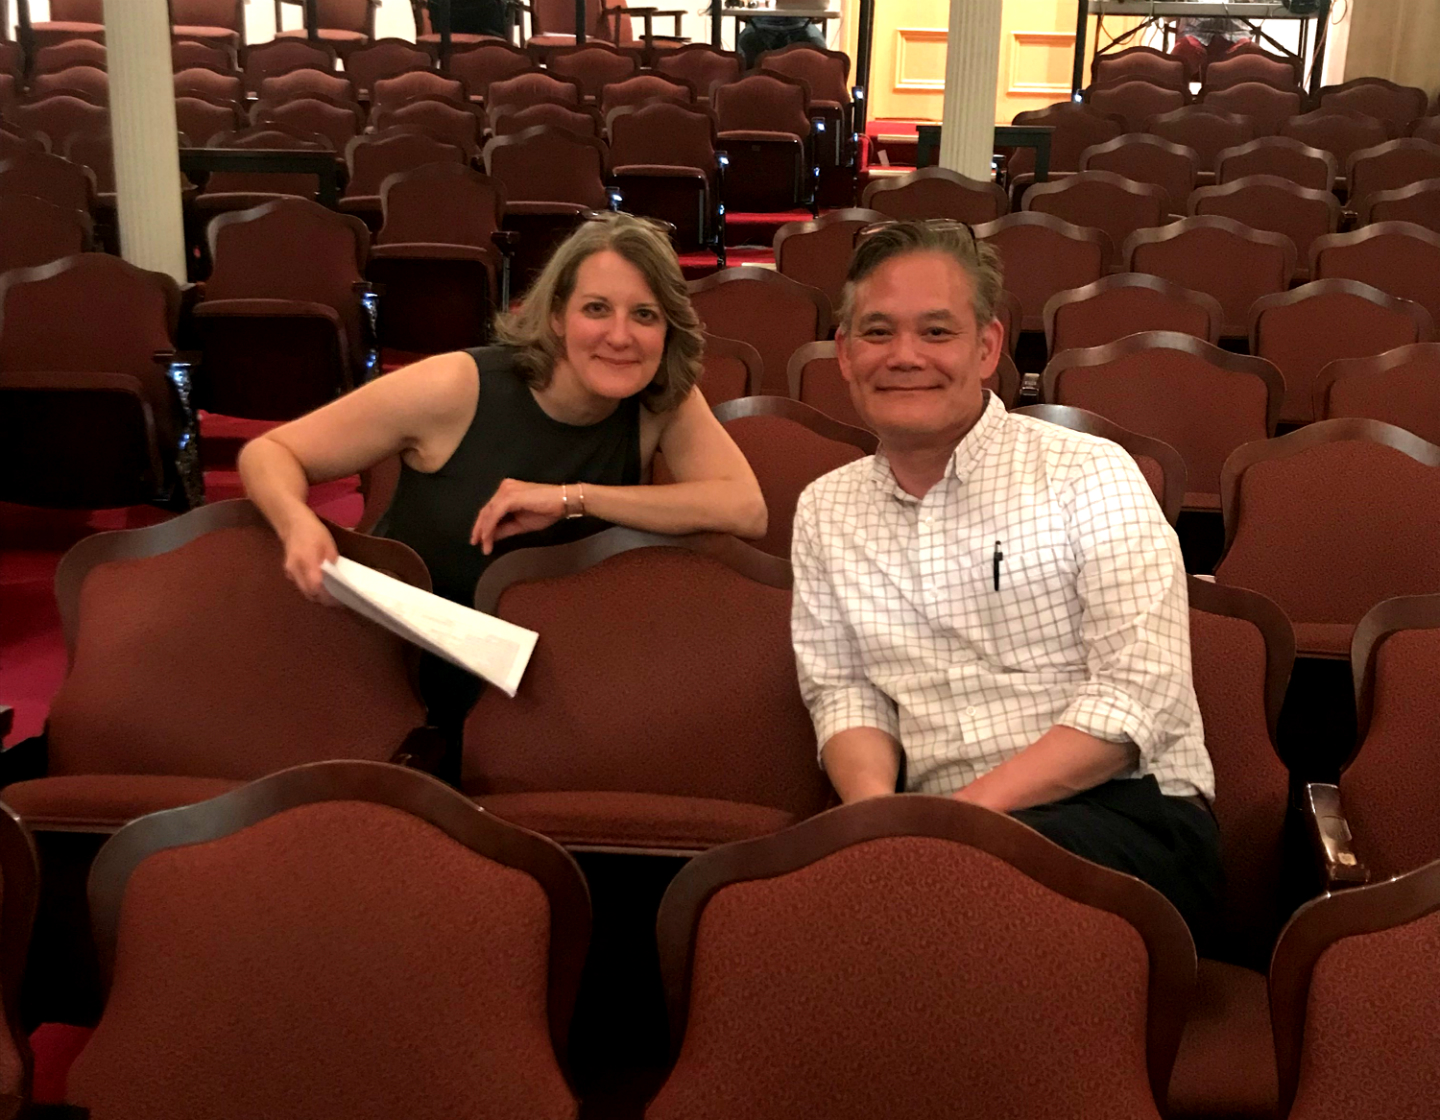 Diane Nutting and Roger Ideishi sit inside of Ford's Theatre in the orchestra section. Roger is an Asian-American man and Diane is a white woman with shoulder-length blonde hair.